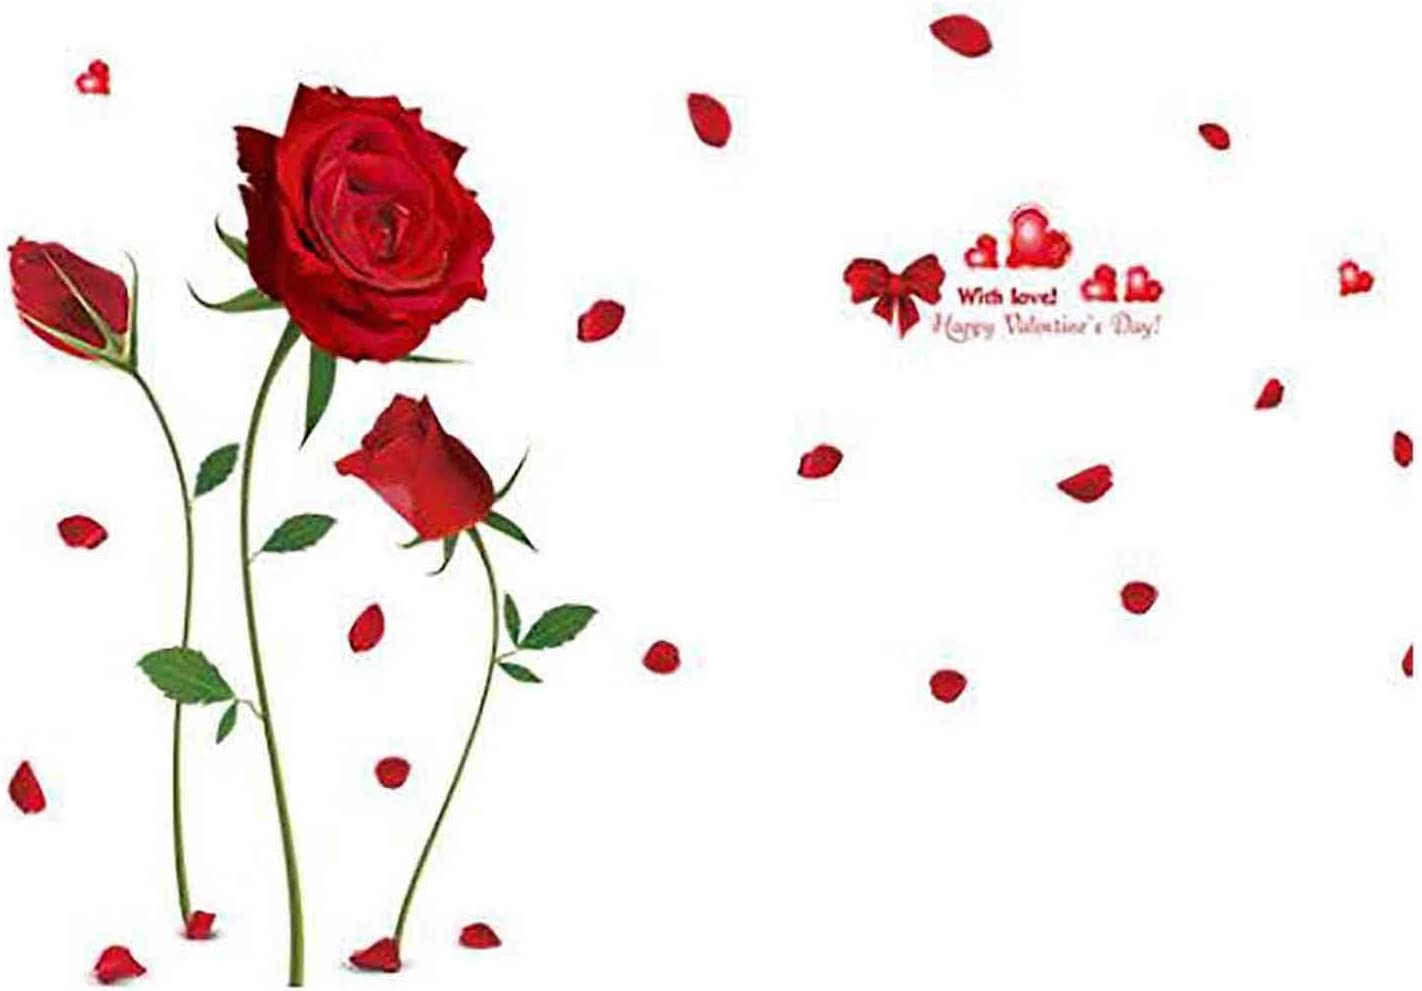 RYGHEWE Wall Max 69% OFF Stickers Decal - Sale Special Price Red Art Mu Rose DIY Sticker